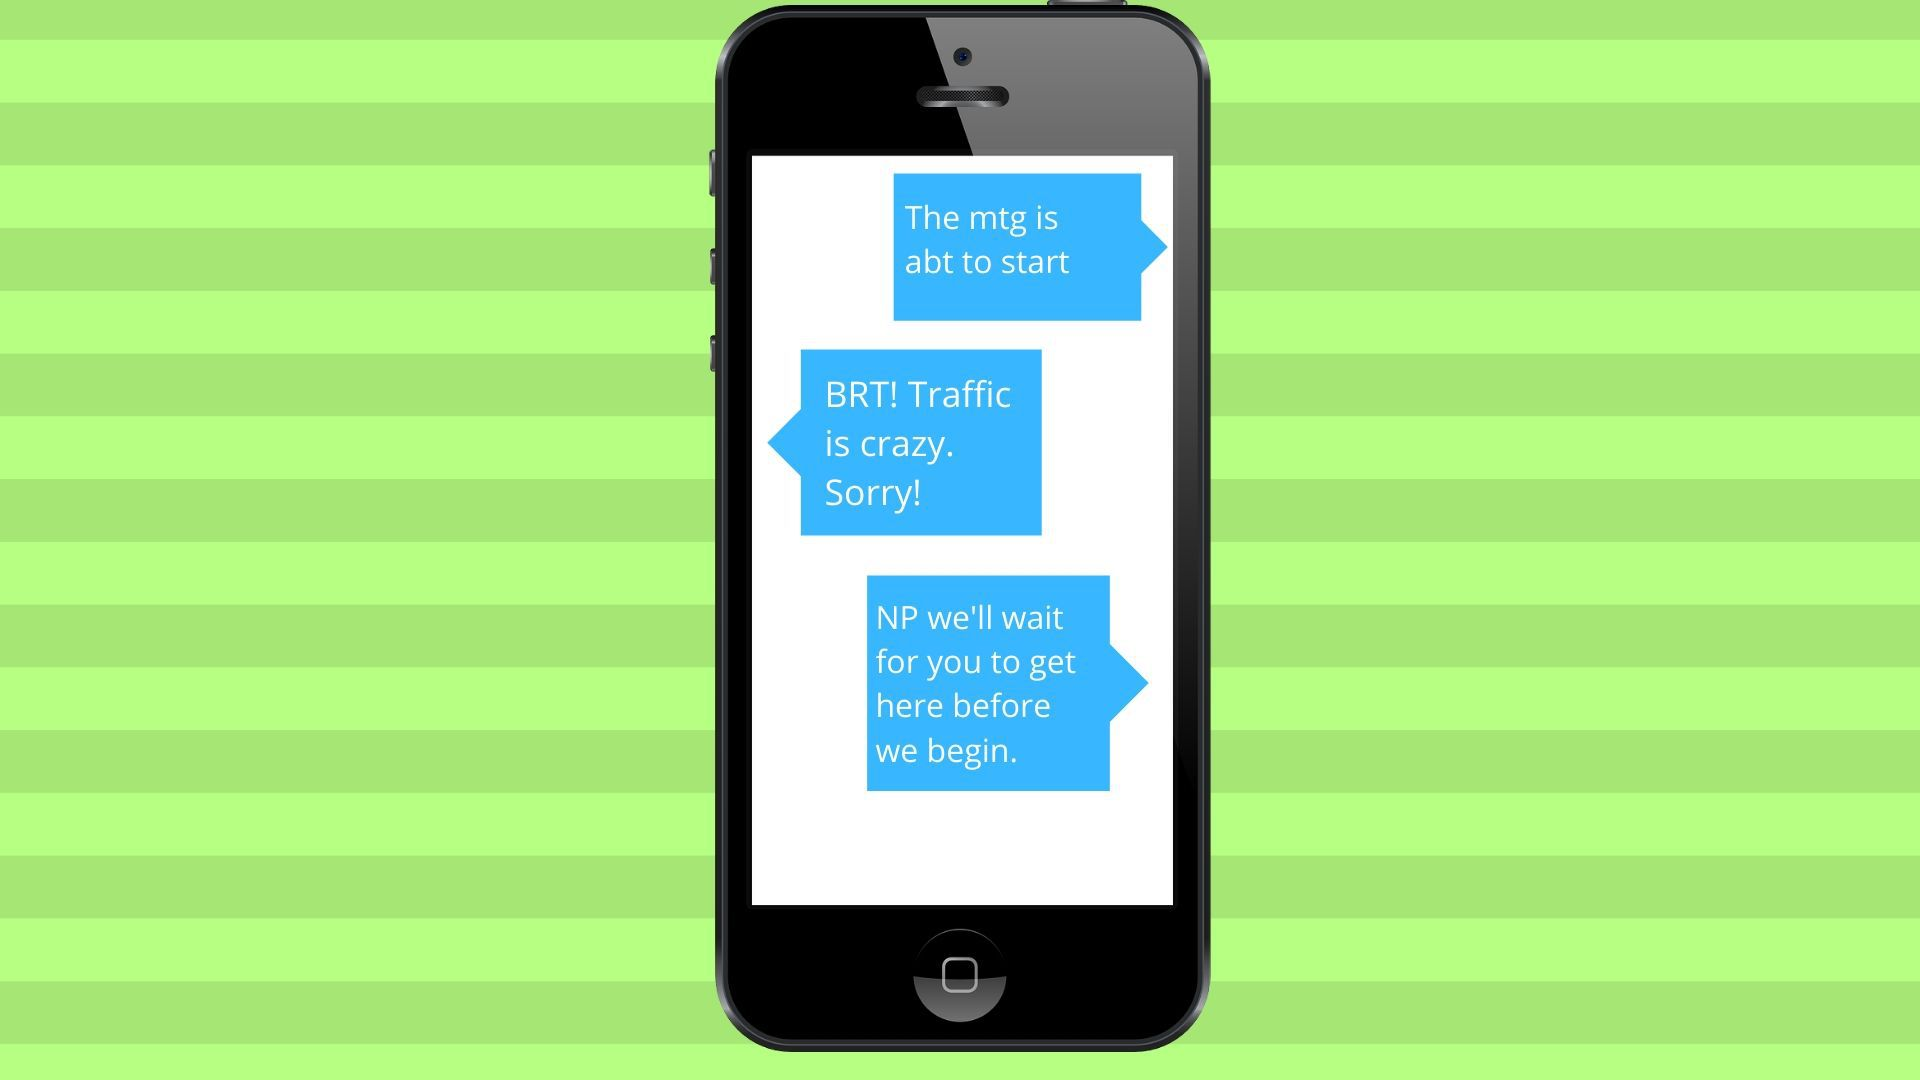 Chat message using BRT.